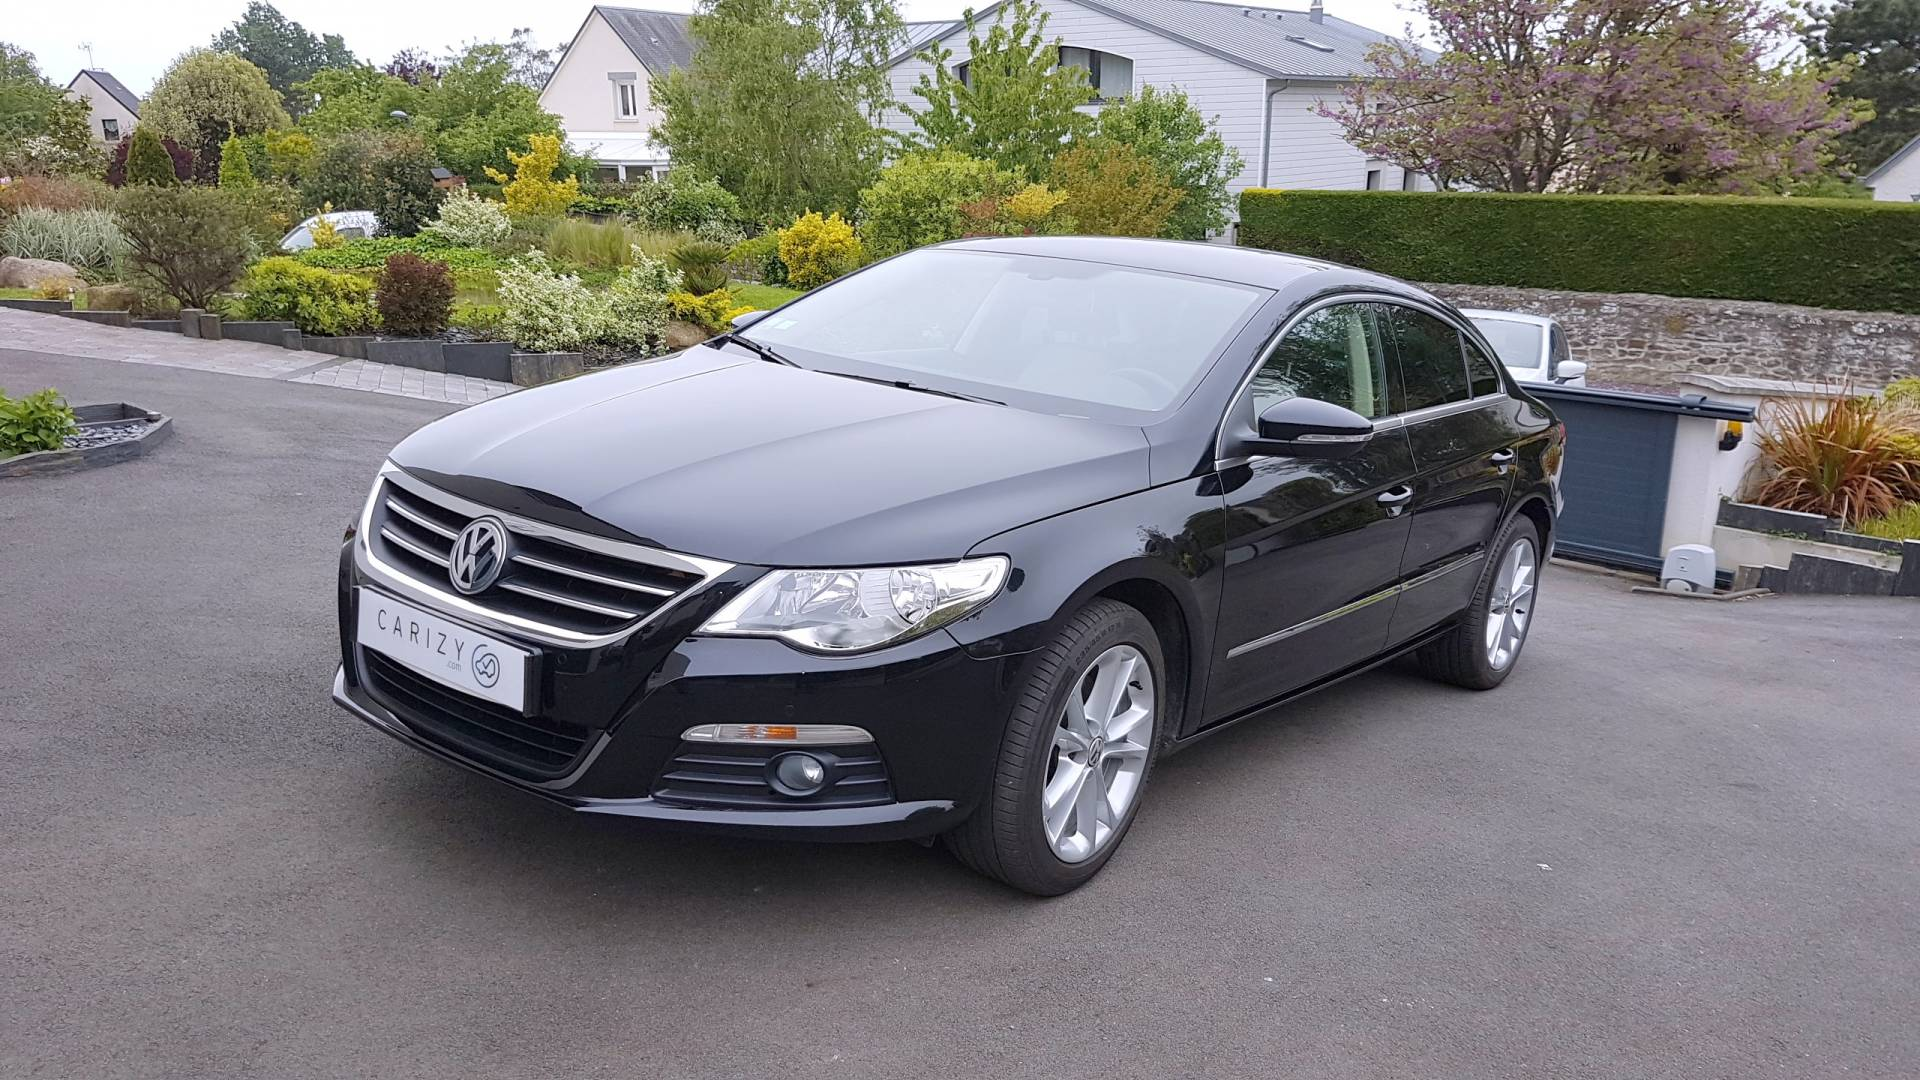 volkswagen passat d 39 occasion cc 2 0 tdi 170 carat agneaux carizy. Black Bedroom Furniture Sets. Home Design Ideas